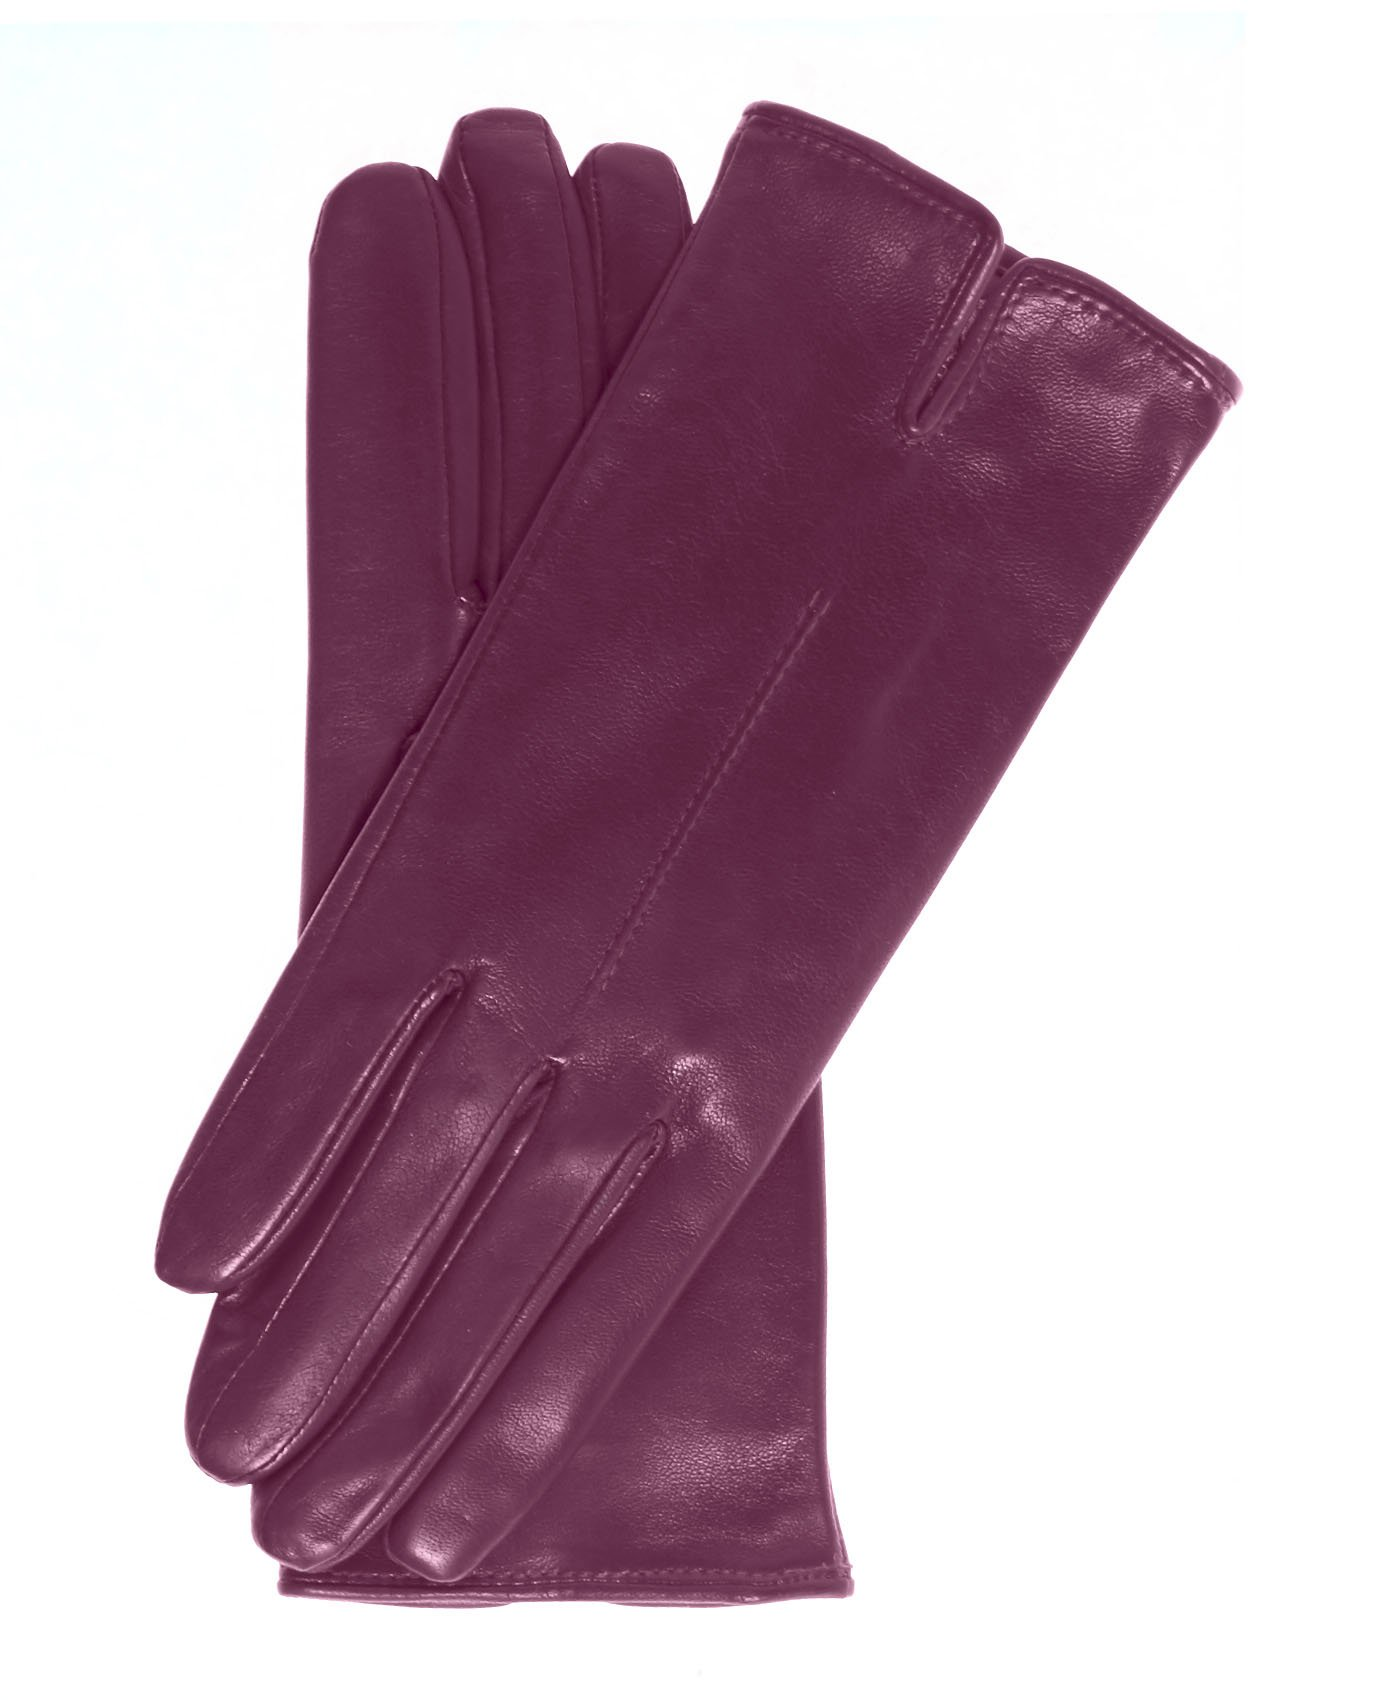 Fratelli Orsini Everyday Women's Italian Silk/Cashmere Lined Leather Gloves Size 7 1/2 Color Magenta